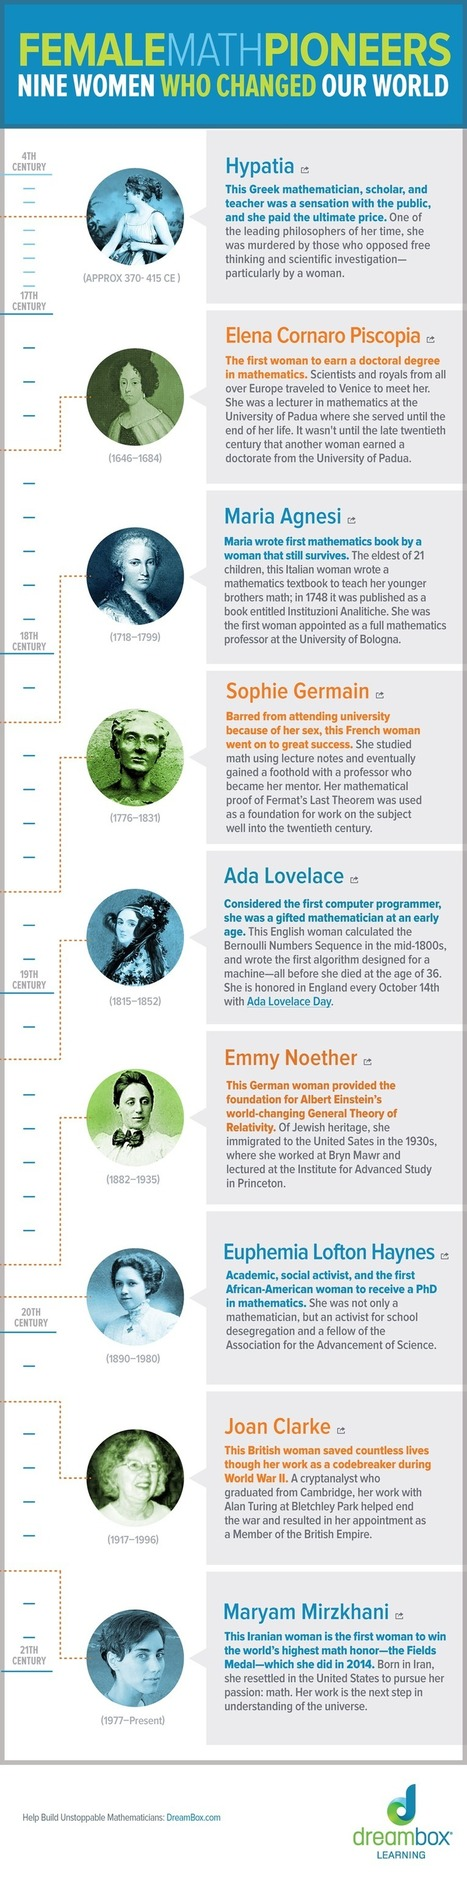 Amazing female mathematicians - DreamBox Learning | Innovation Disruption in Education | Scoop.it